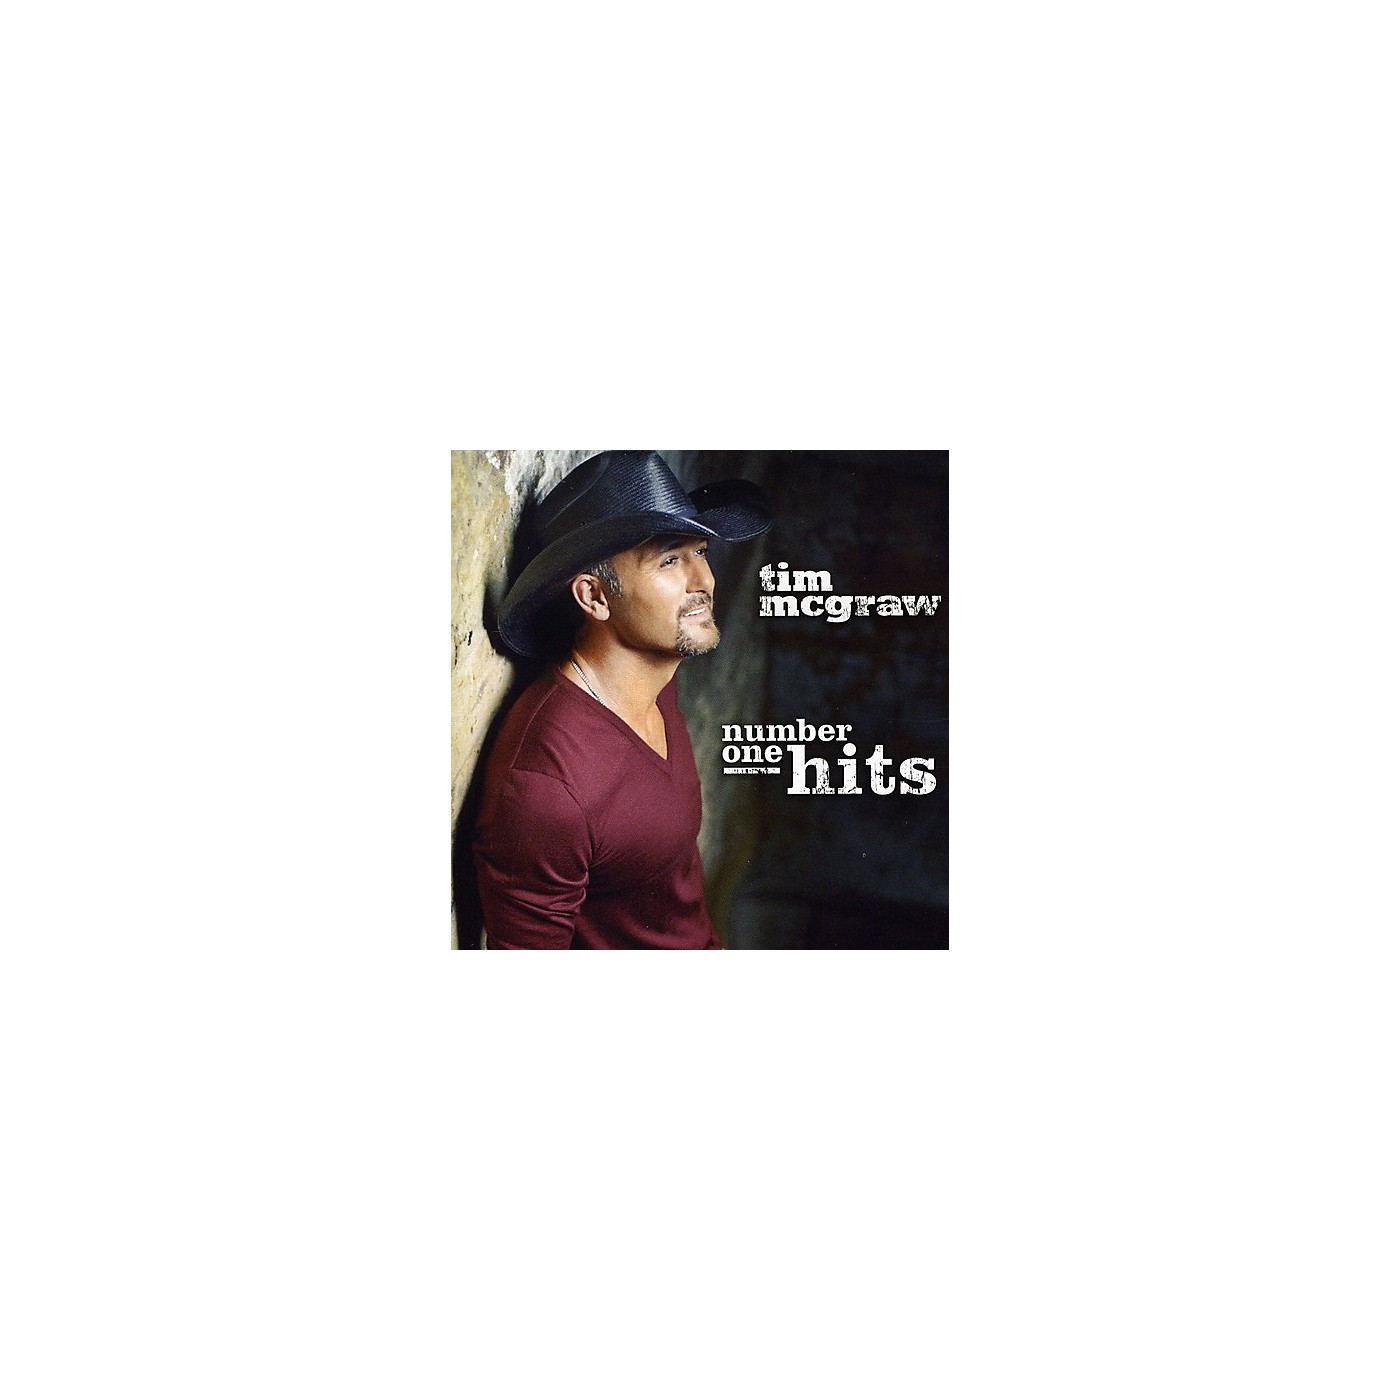 Alliance Tim McGraw - Number One Hits (CD) thumbnail